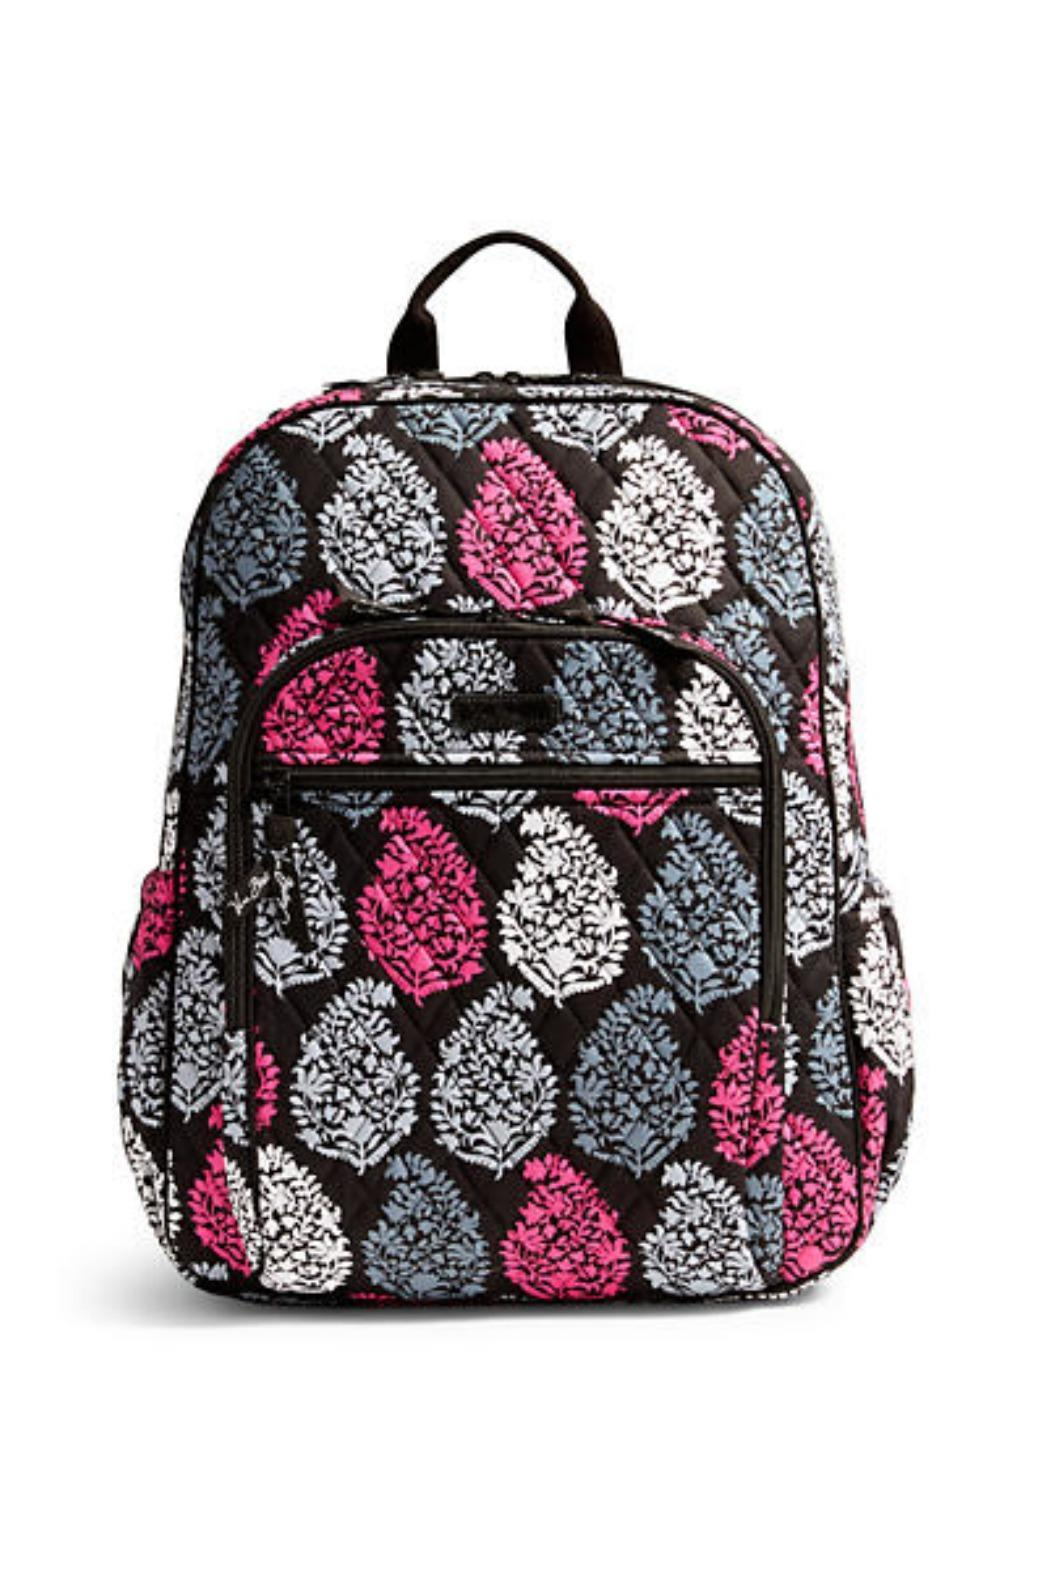 Highlights for Vera Bradley. If you love unapologetic paisley patterns in eye-popping hues, Vera Bradley is your handbag soul-mate. Since , the company has pursued their goal of making fashionably bold purses, accessories and luggage.